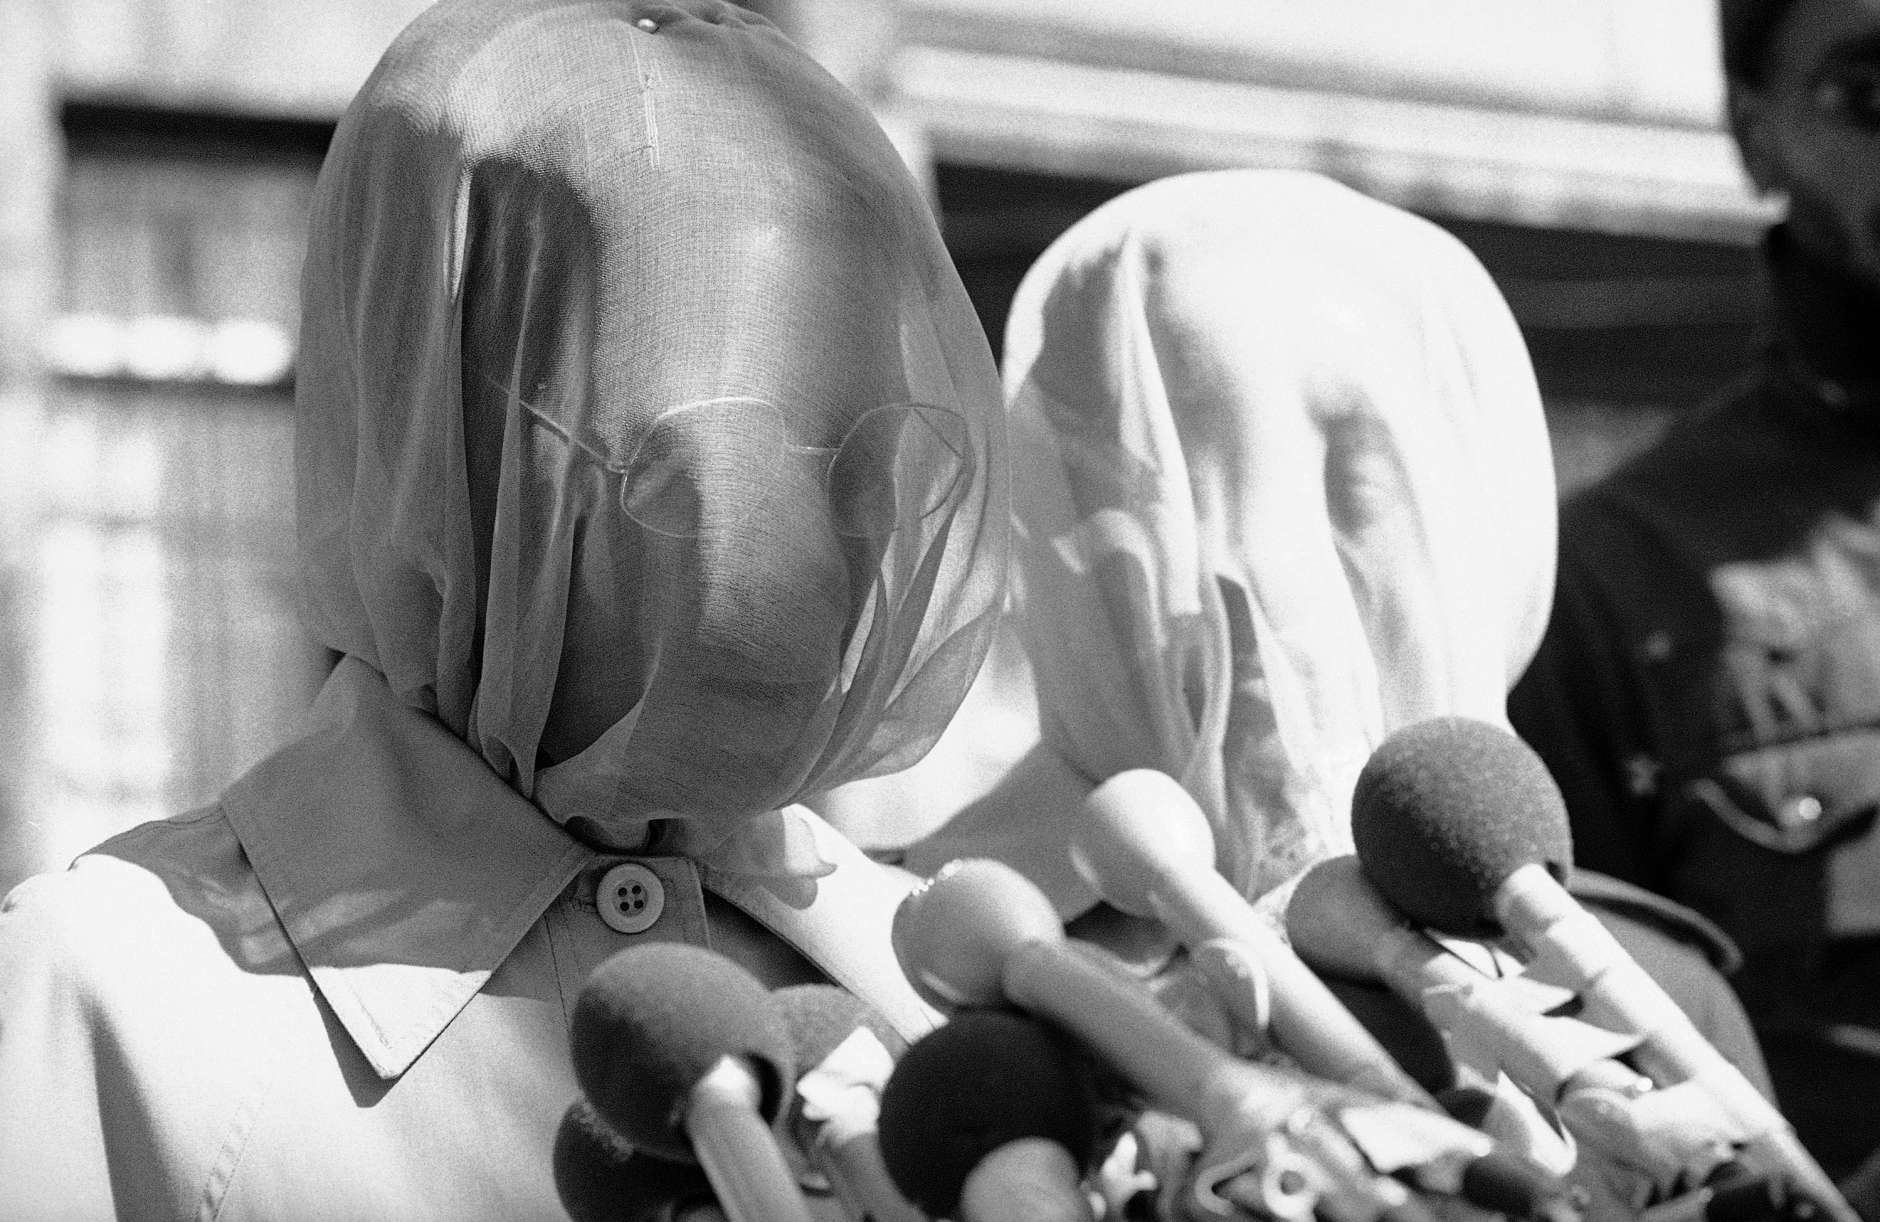 Veiled Begum Khadyja, left, wife of the Hanafi Muslim sect leader, Hamaas Abdul Khaalis, reads a statement to reporters in Washington on Thursday, March 17, 1977 in answer to a statement made by Rabbi Meir Kahane of the Jewish Defense League. Kahane said his JDL will mass in front of the Washington headquarters of the Hanafis and challenge them to fight. The Hanafi warned the JDL 'that they will write their epitaph in self-destruction and the blood of their people. Woman at right is unidentified. (AP Photo)